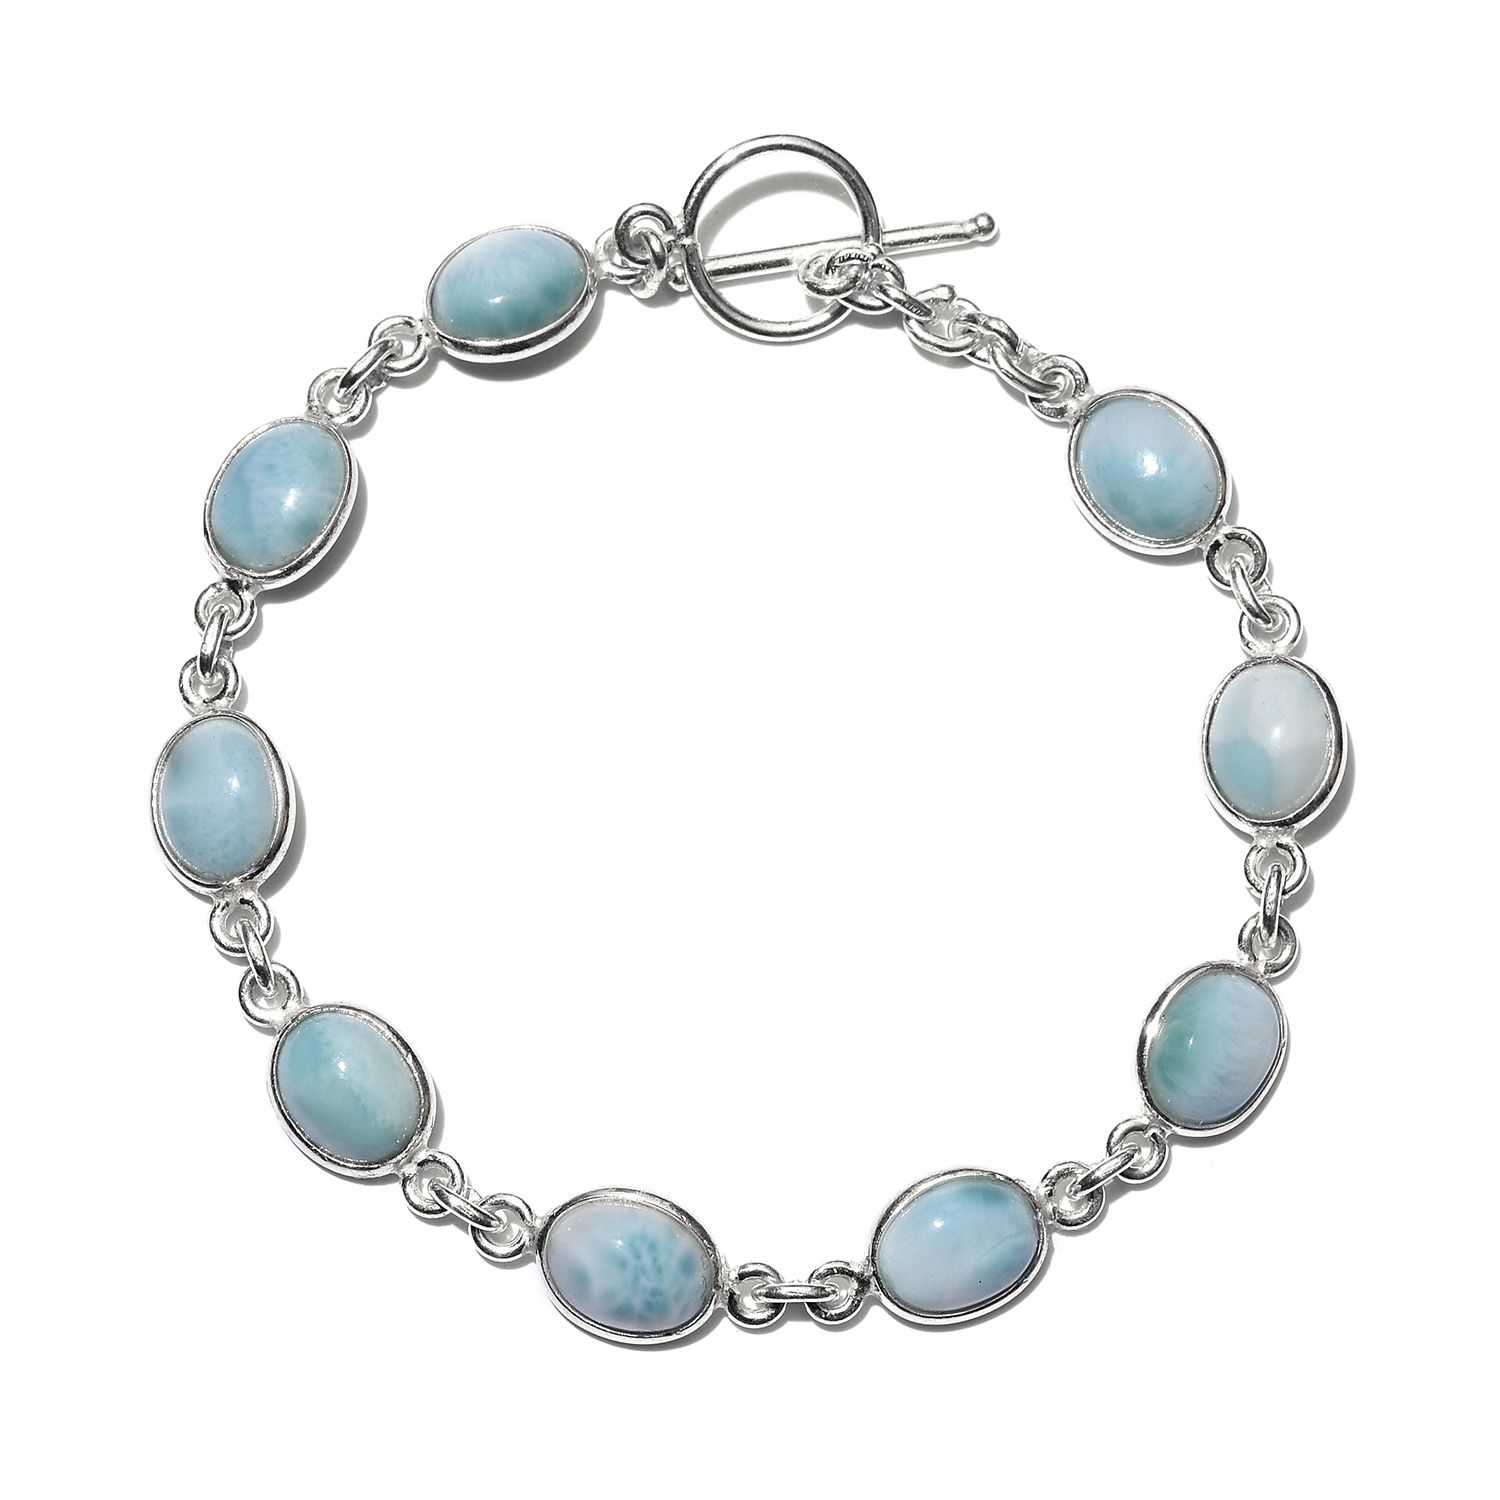 f16c9f174 Artisan Crafted Sea Mist Larimar Sterling Silver Bracelet (7.50 In) TGW  17.80 cts. | Green-Larimar | Promotions | online-store | Shop LC